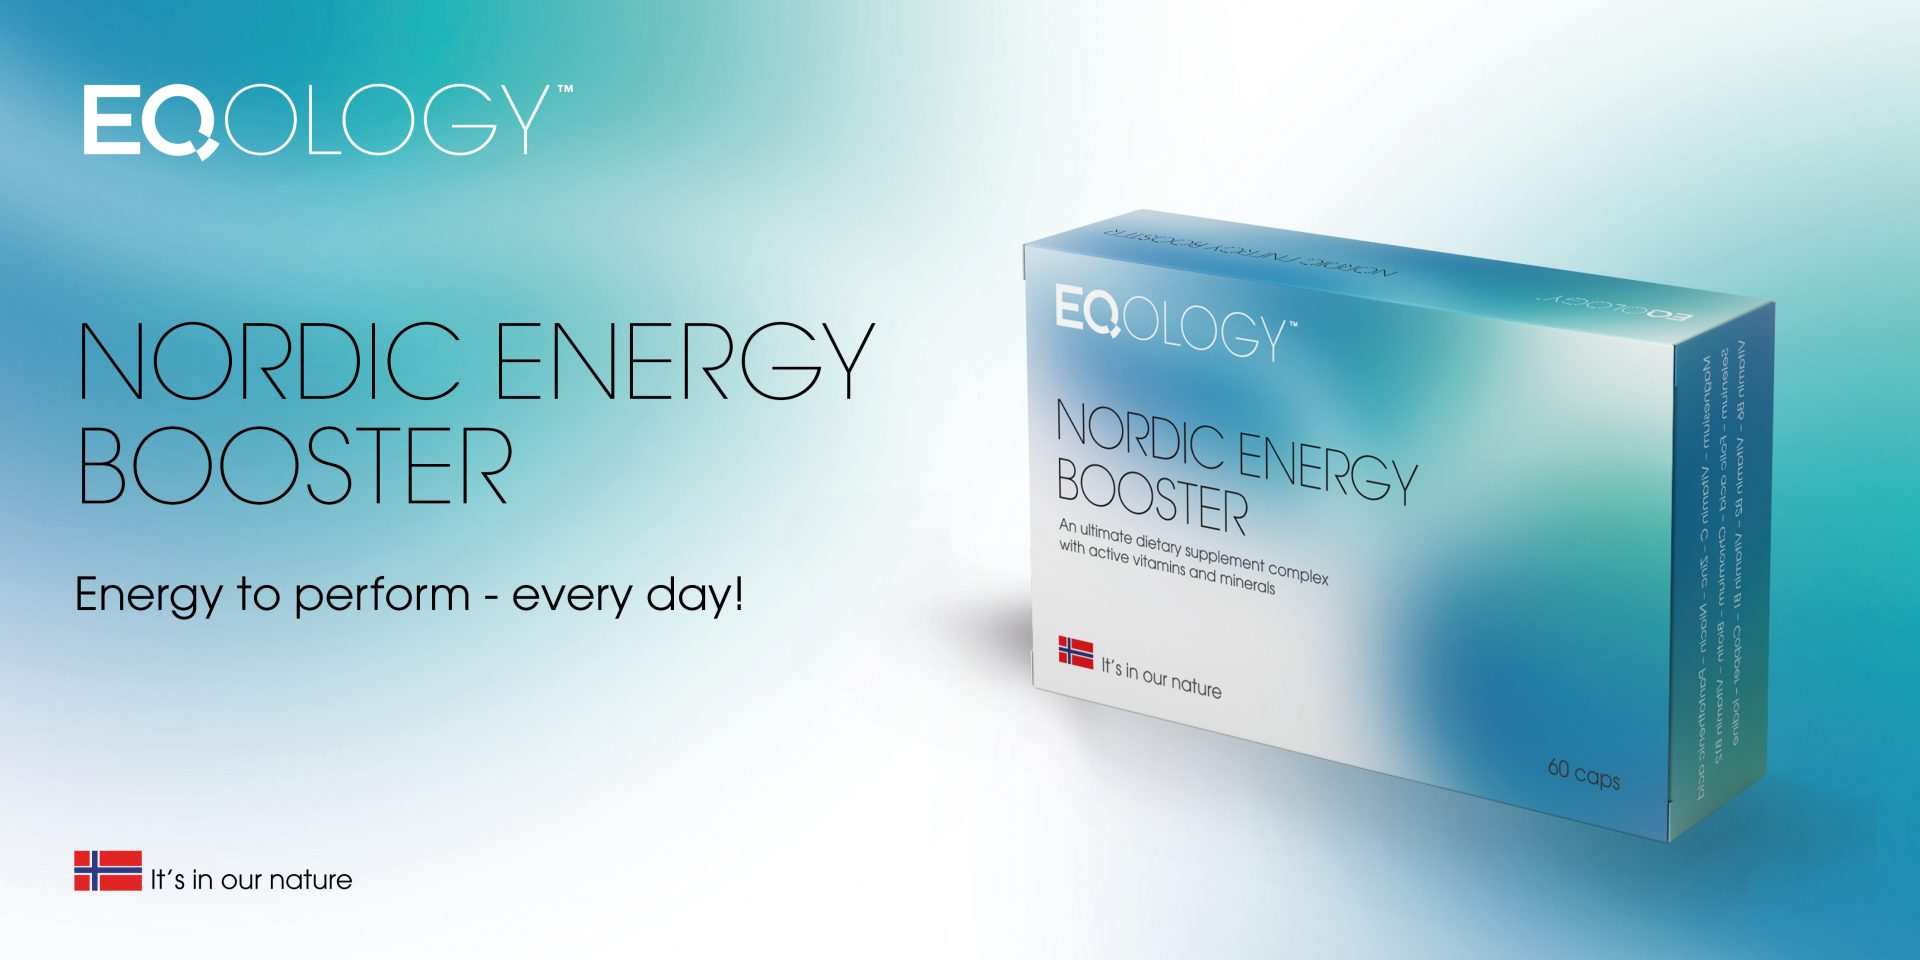 Nordic Energy Booster